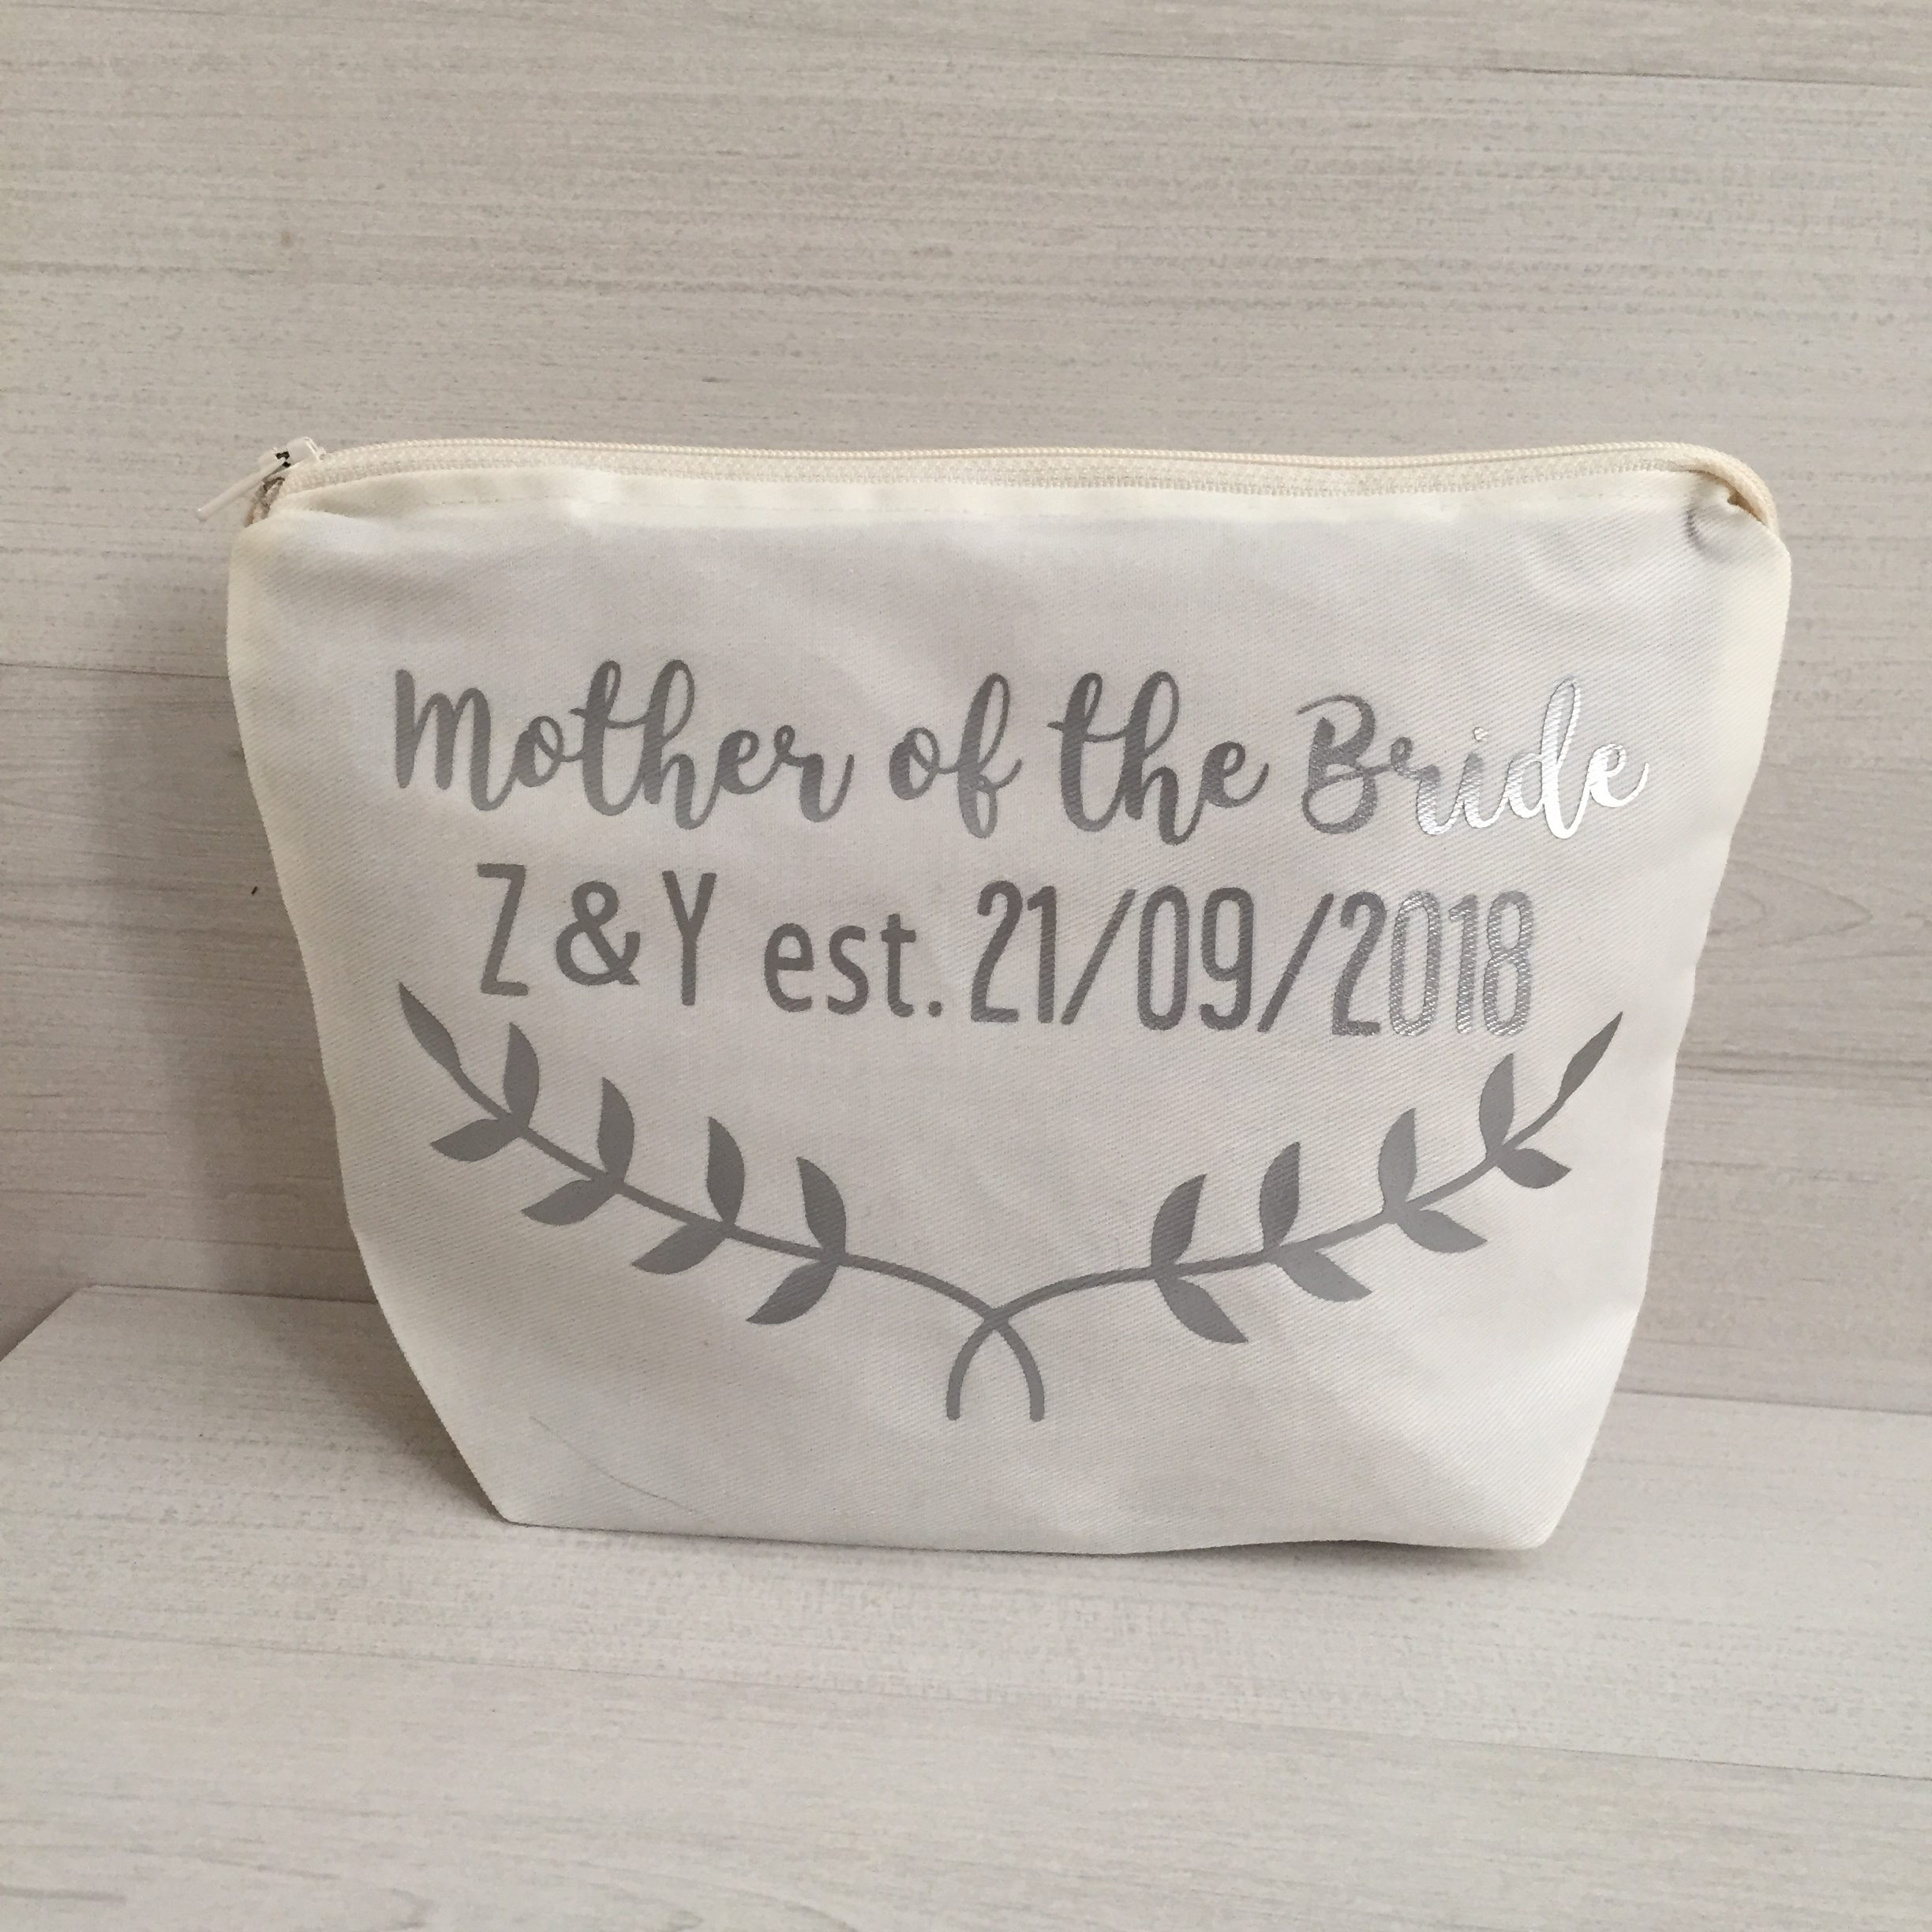 Personalised Mother of the Bride-Make-Up-Bag